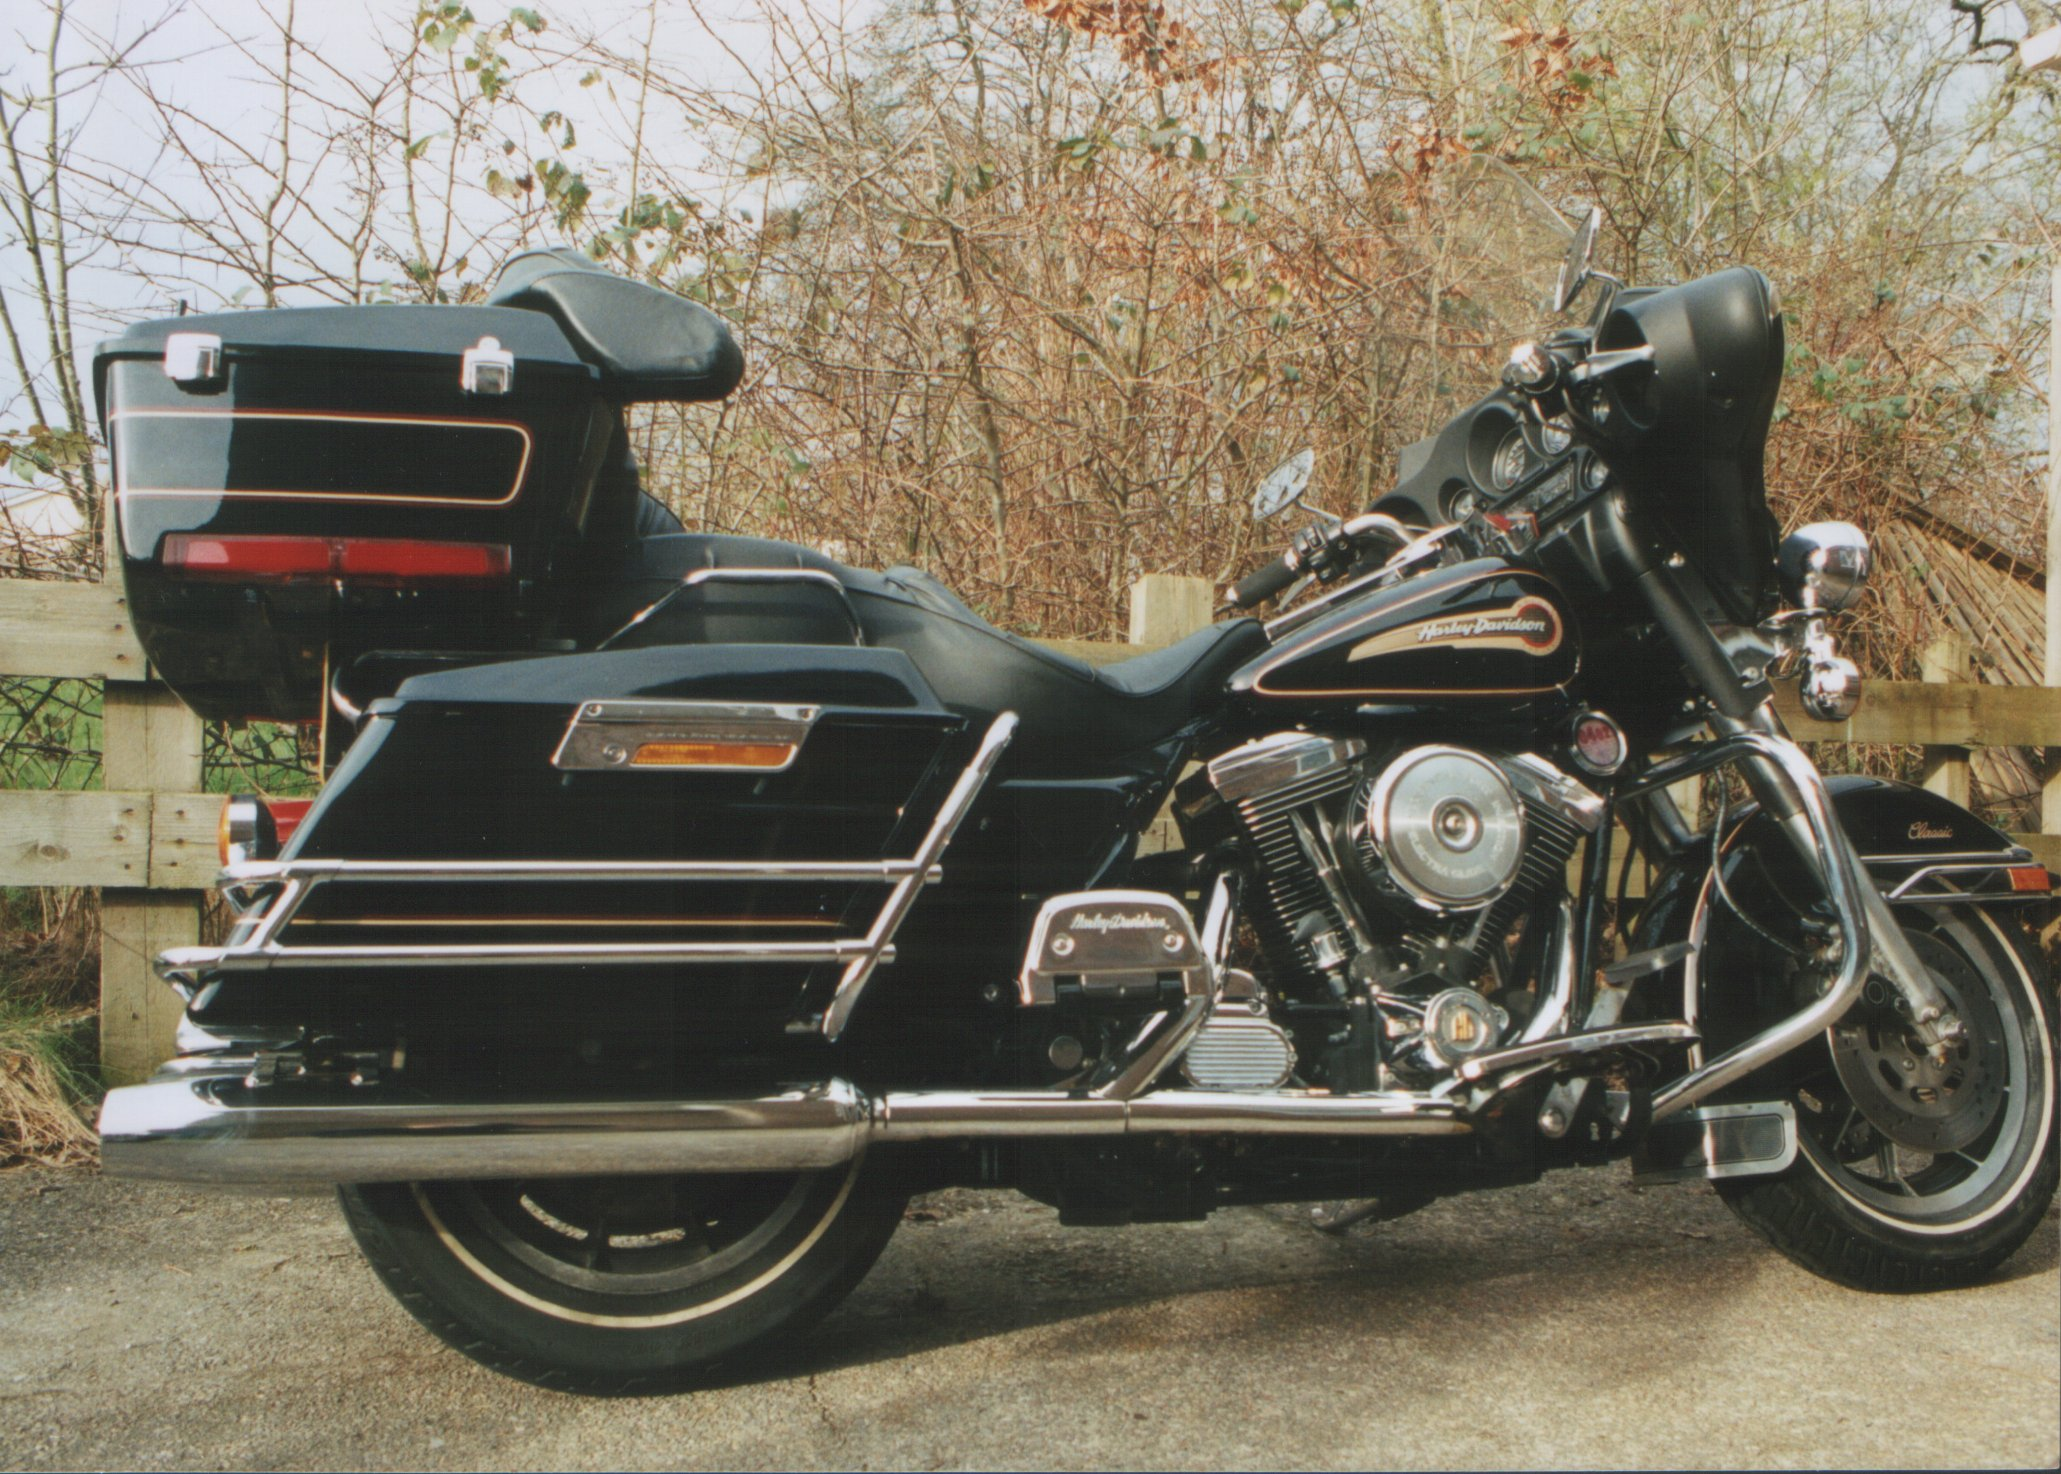 harleydavidson flhs 1340 electra glide sport reduced effect 1991 1 1991 harley davidson flhs 1340 electra glide sport (reduced effect Basic Electrical Wiring Diagrams at fashall.co